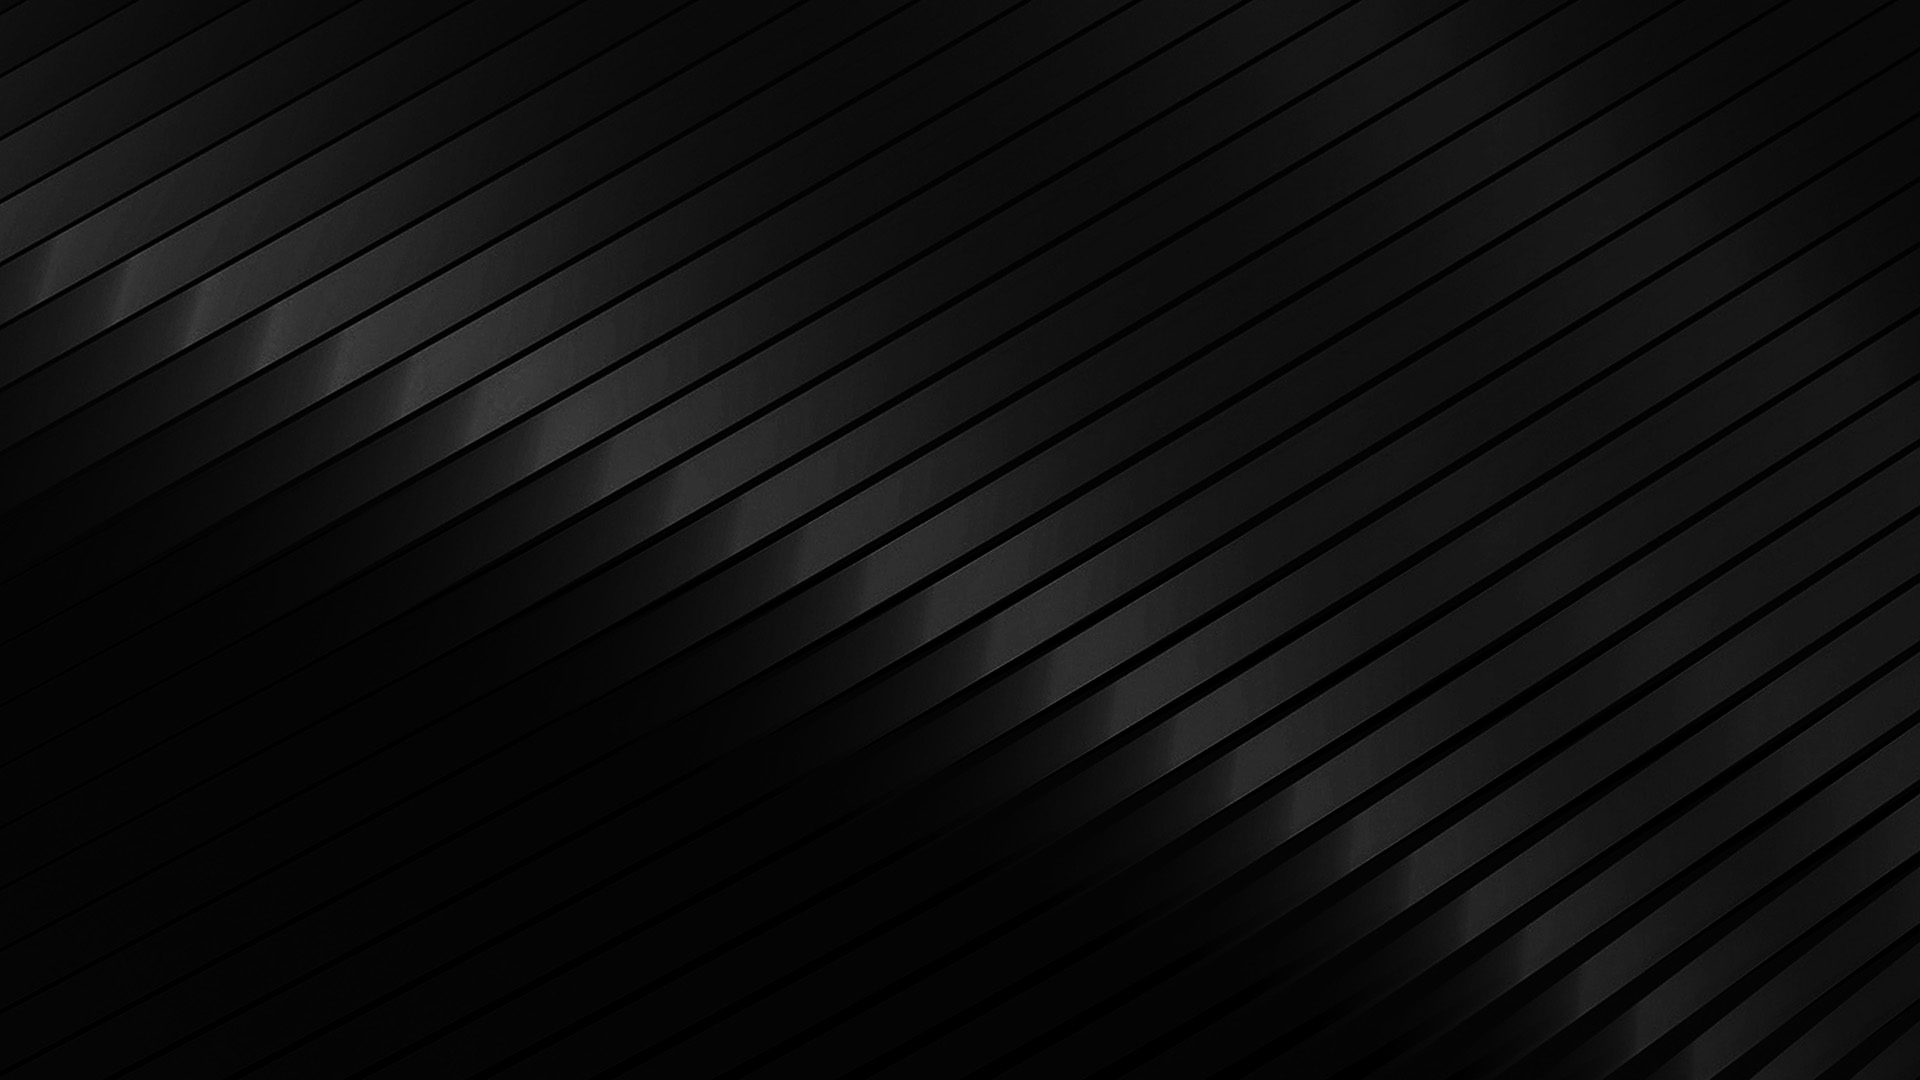 Fall Wallpaper Iphone 7 Vp79 Lg G Flex Dark Bw Line Gray Pattern Black Wallpaper